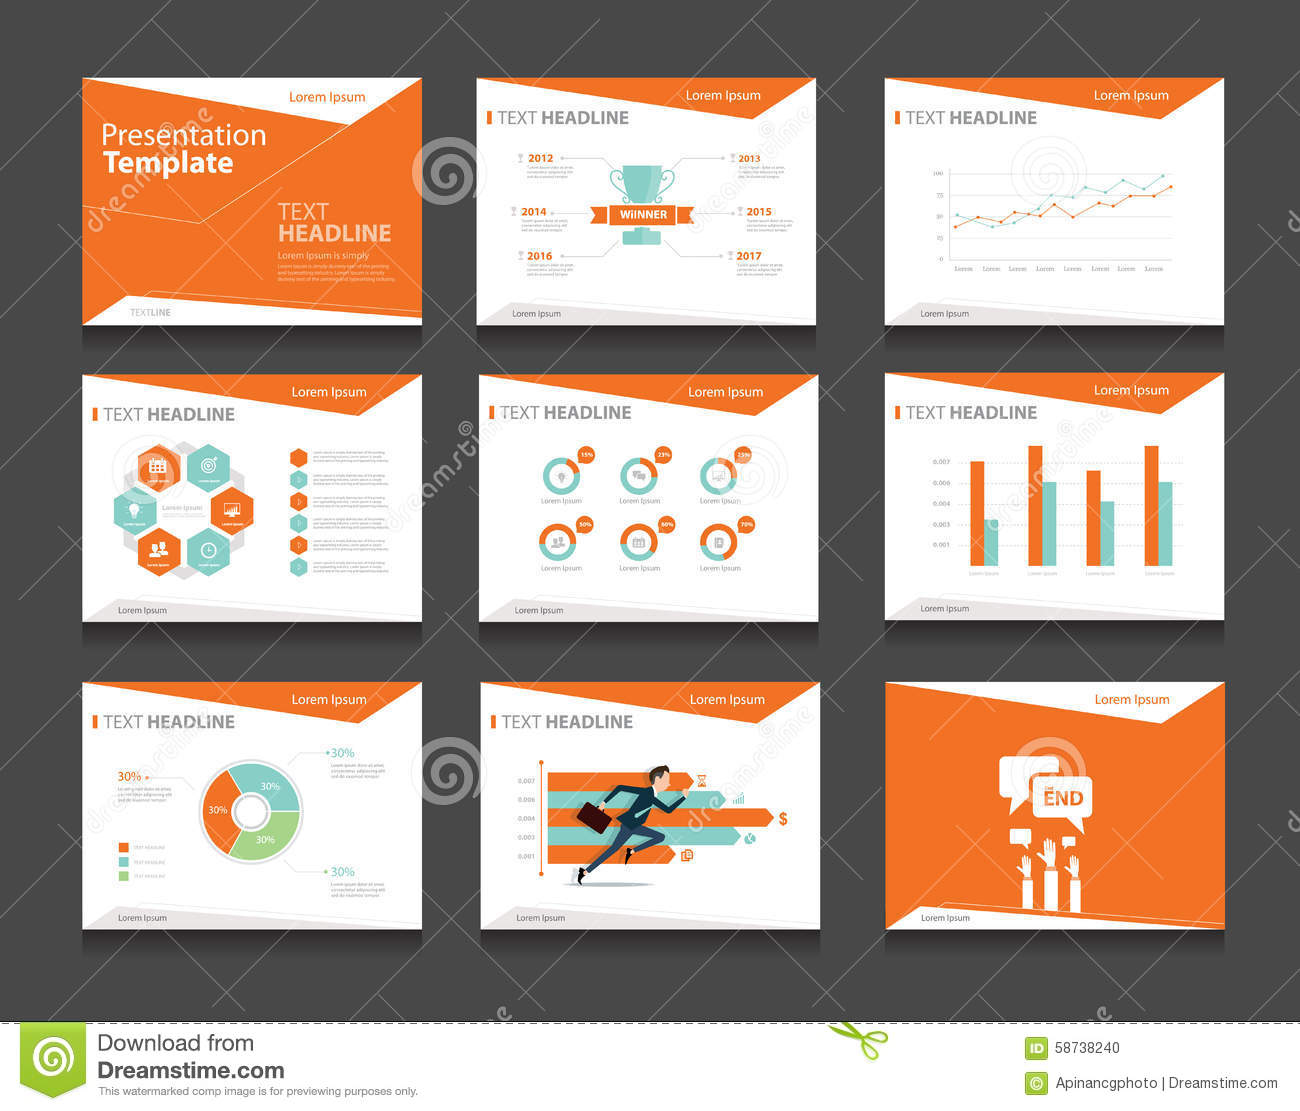 Powerpoint templates for corporate presentations selol ink powerpoint templates for corporate presentations wajeb Images